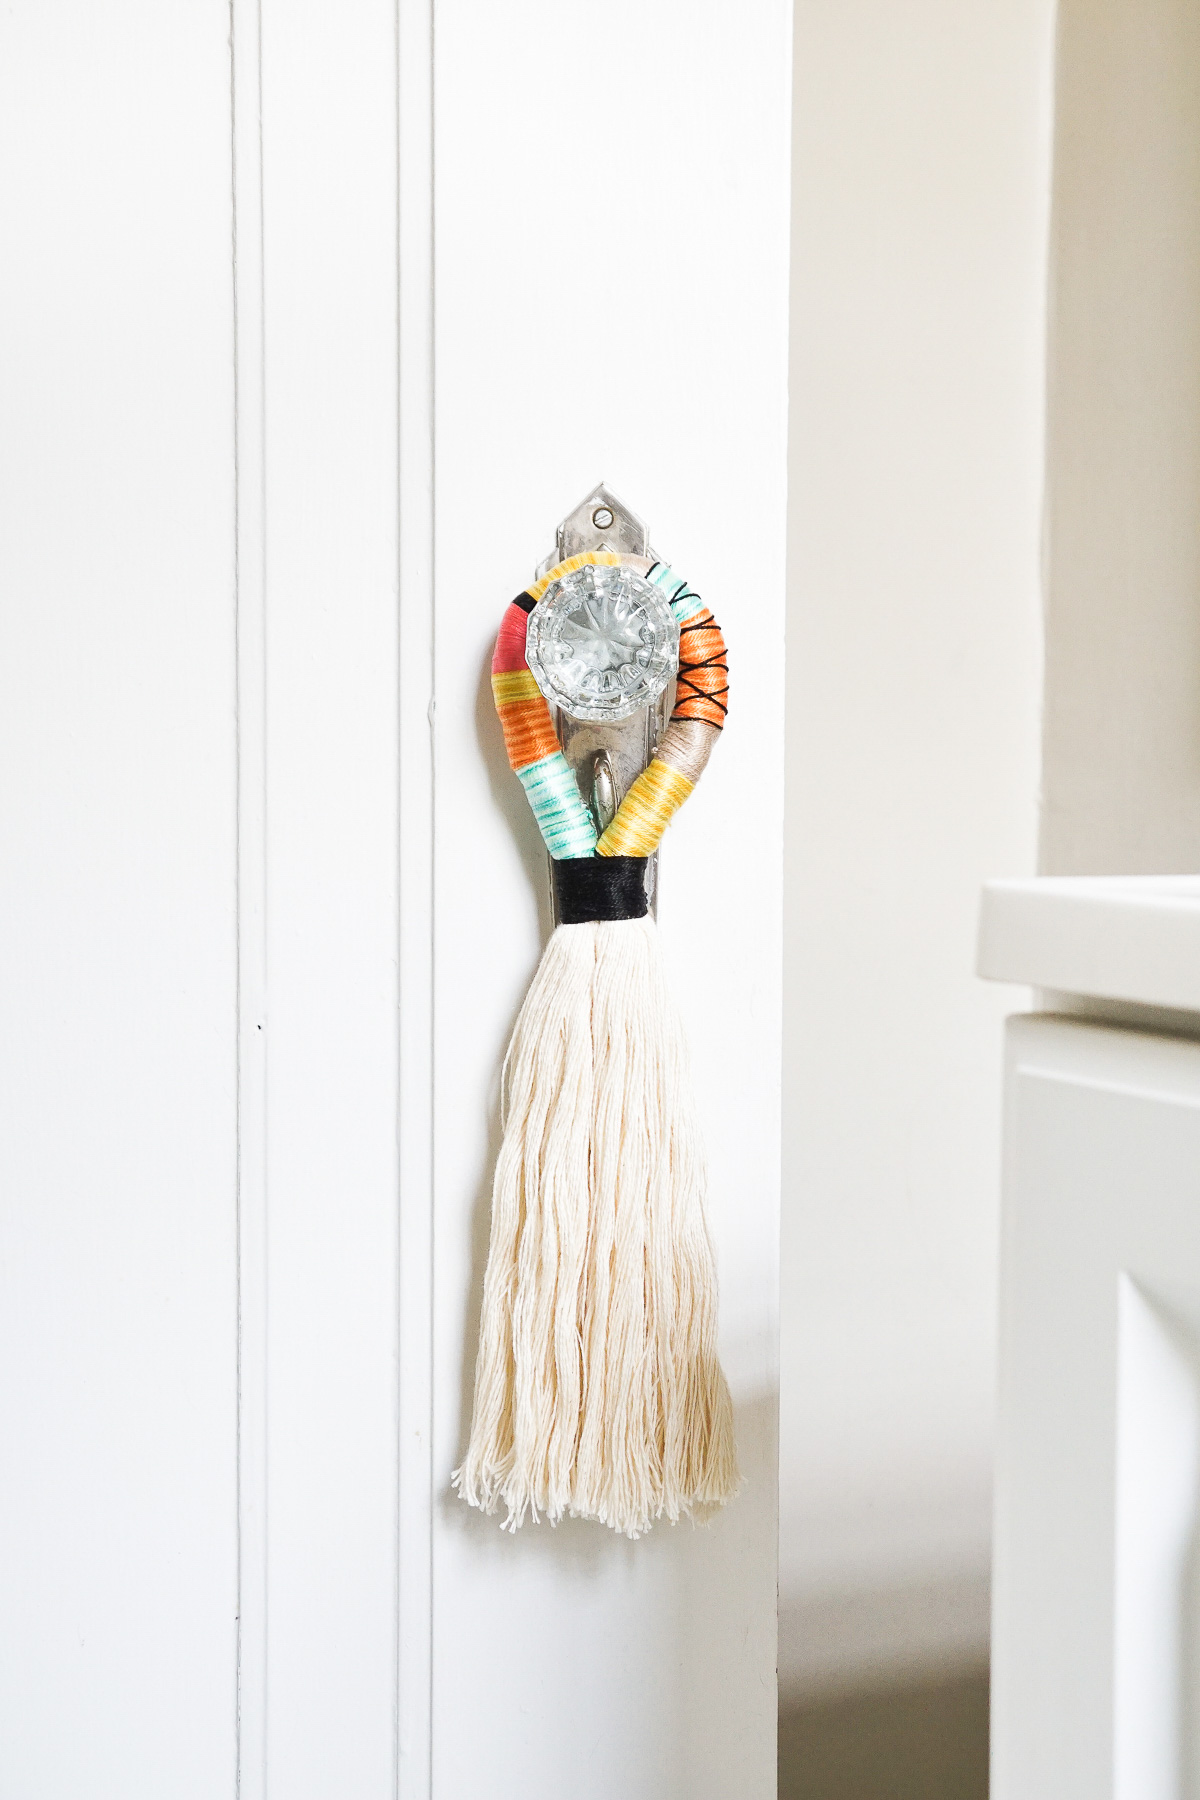 For the Mom who loves chic interiors: DIY door tassels from Sugar & Cloth. Check out my ultimate Mother's Day Gift Guide: Gifts You Can DIY for more ideas! #mothersday #giftideas #diygifts